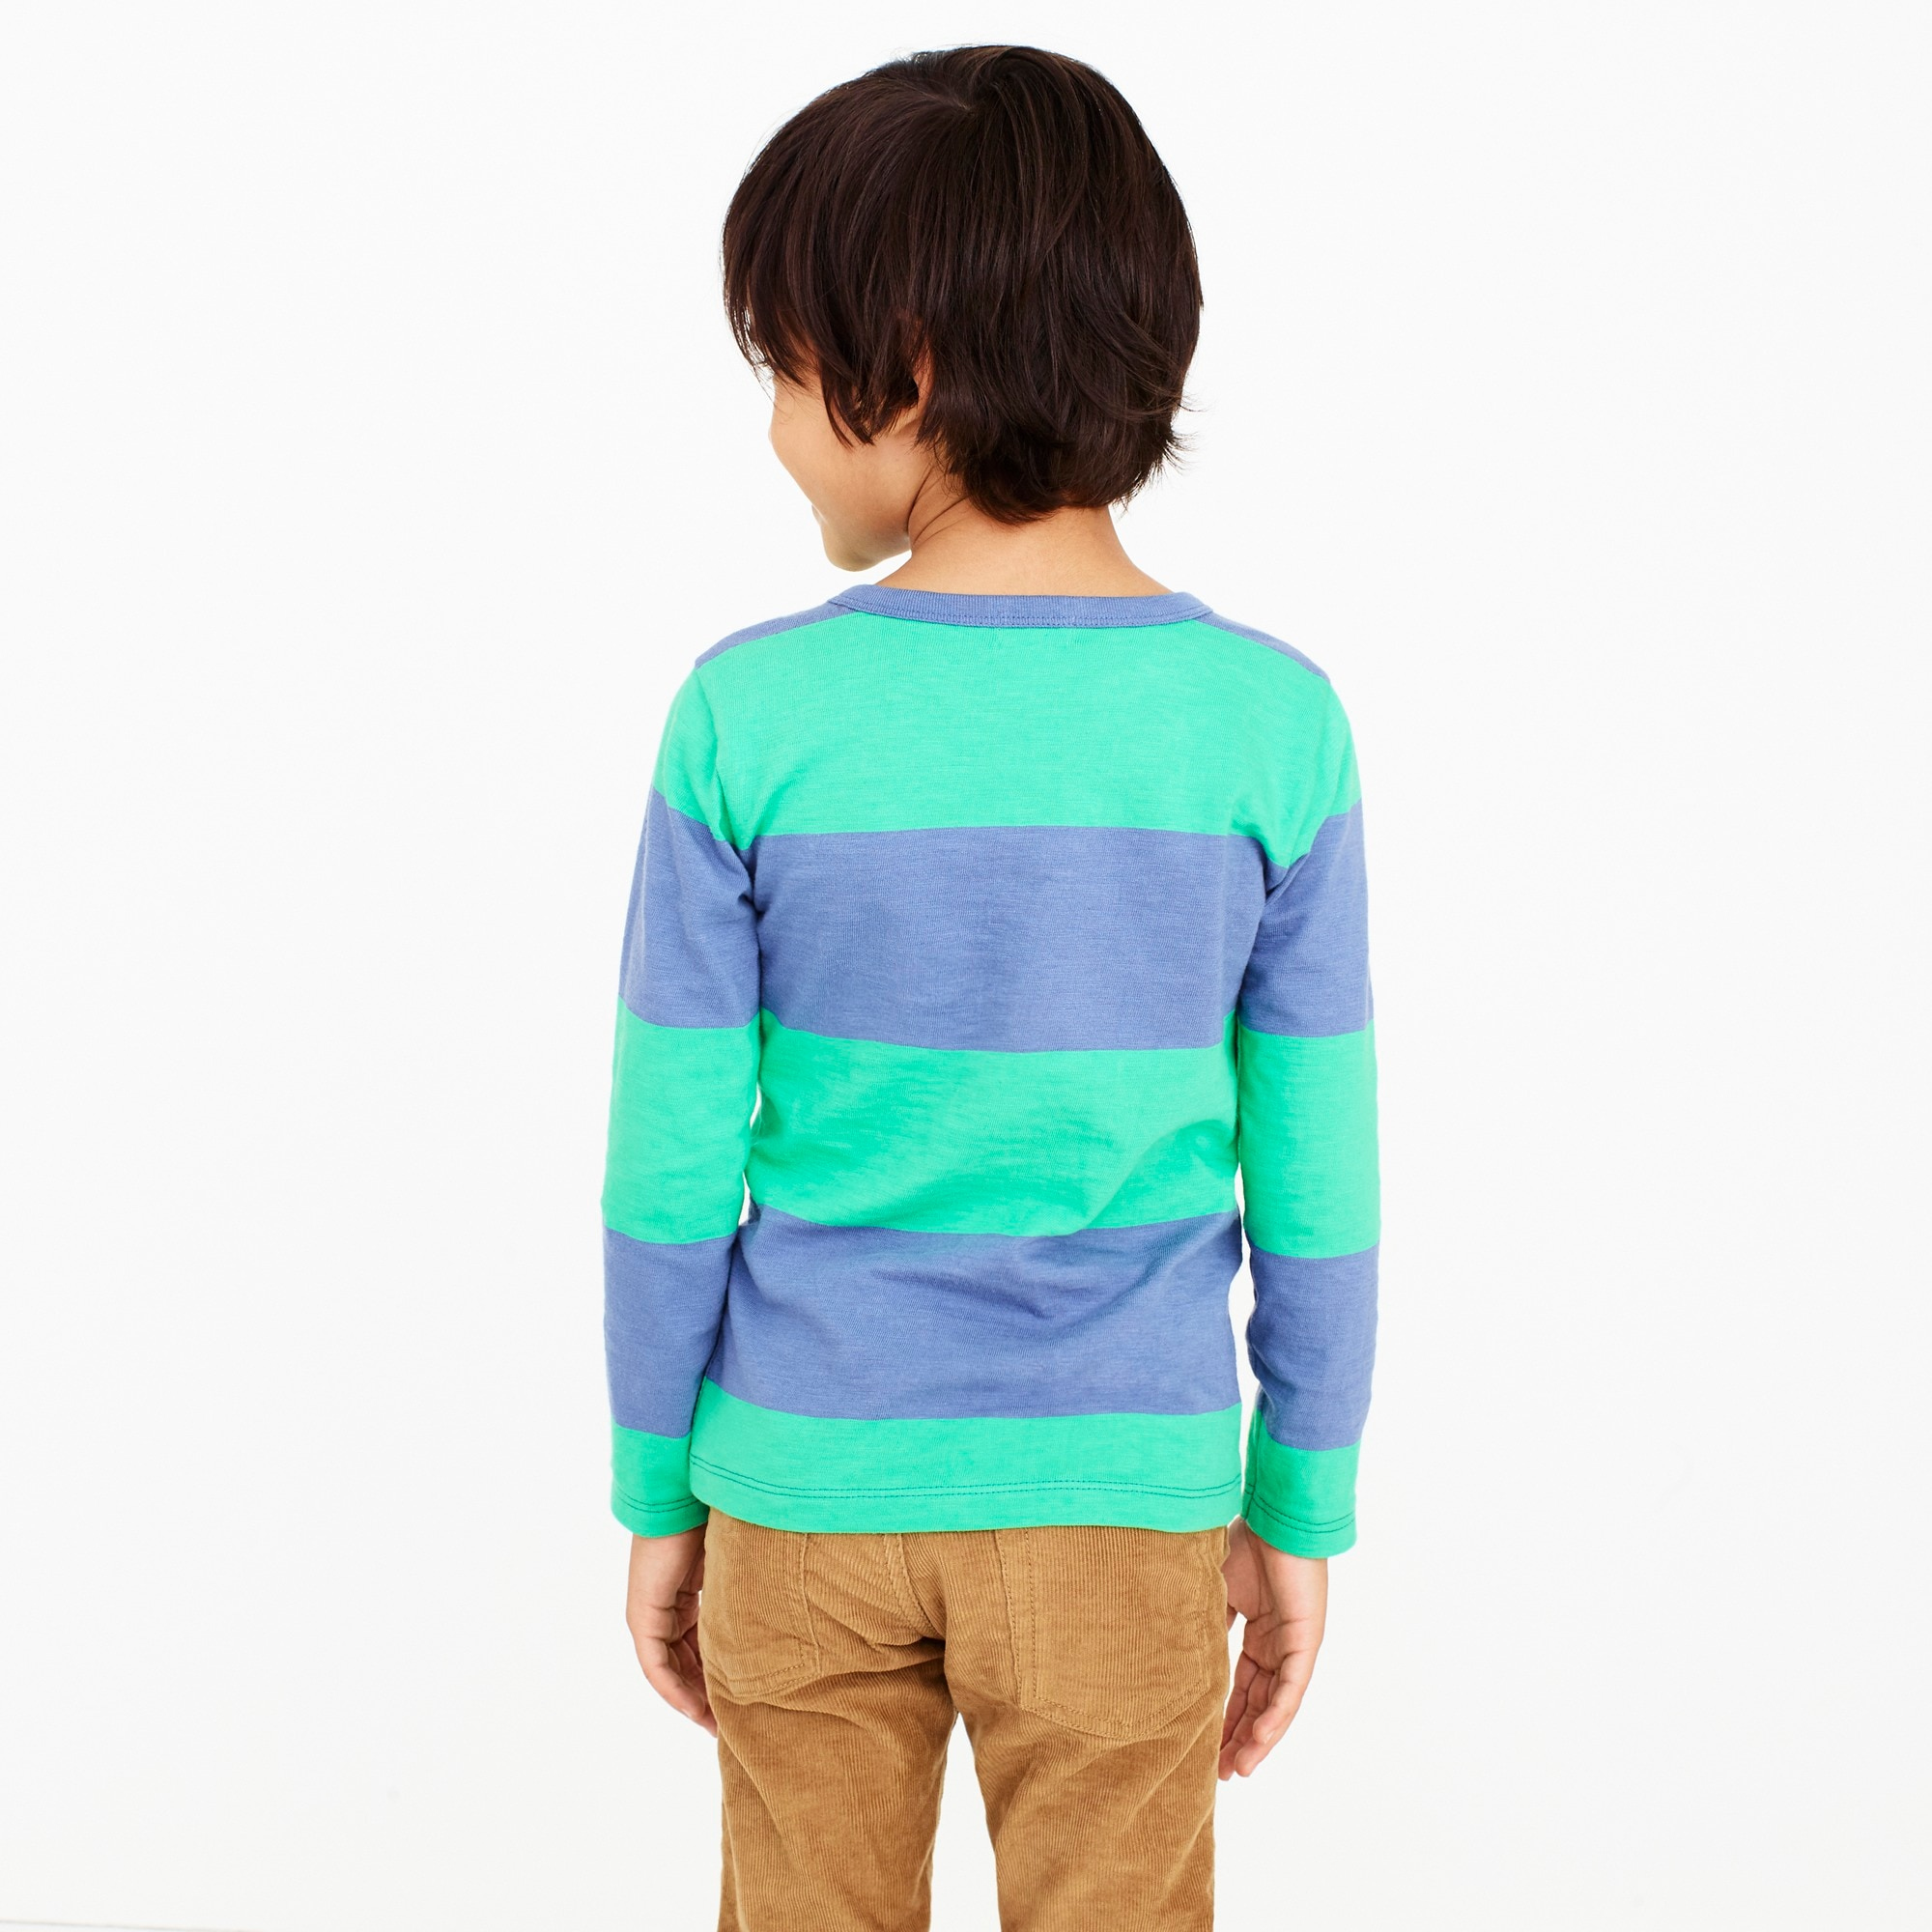 Boys' long-sleeve bright striped tee